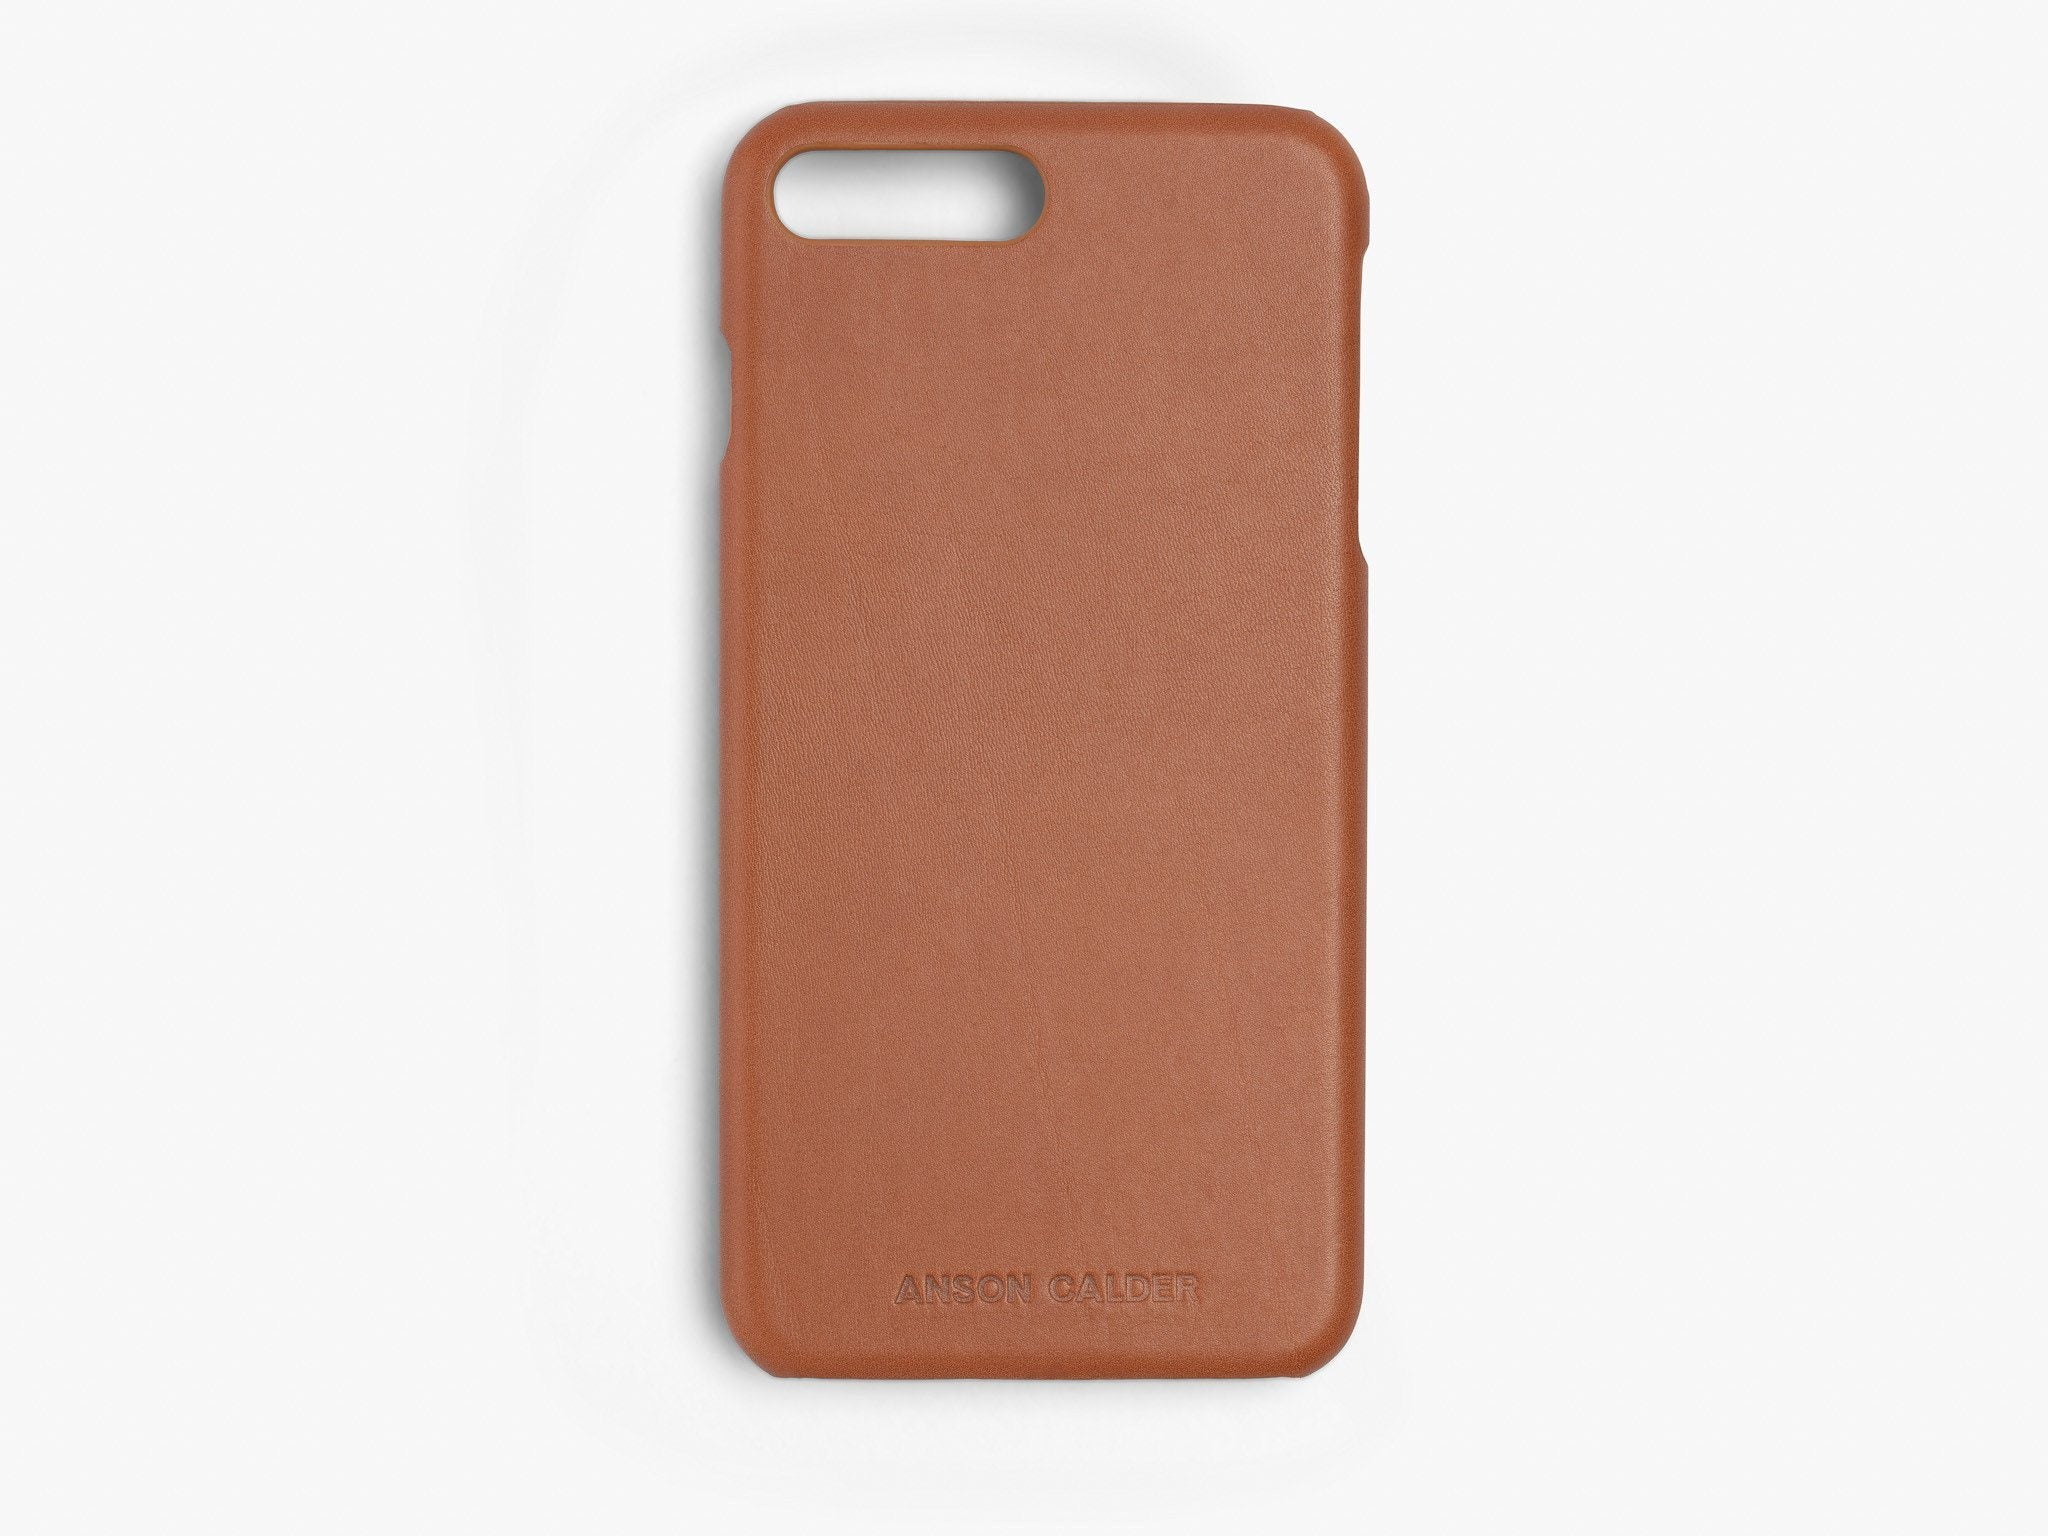 CALFSKIN iPHONE CASE CASES ANSON CALDER iPhone 6 Plus _Cognac